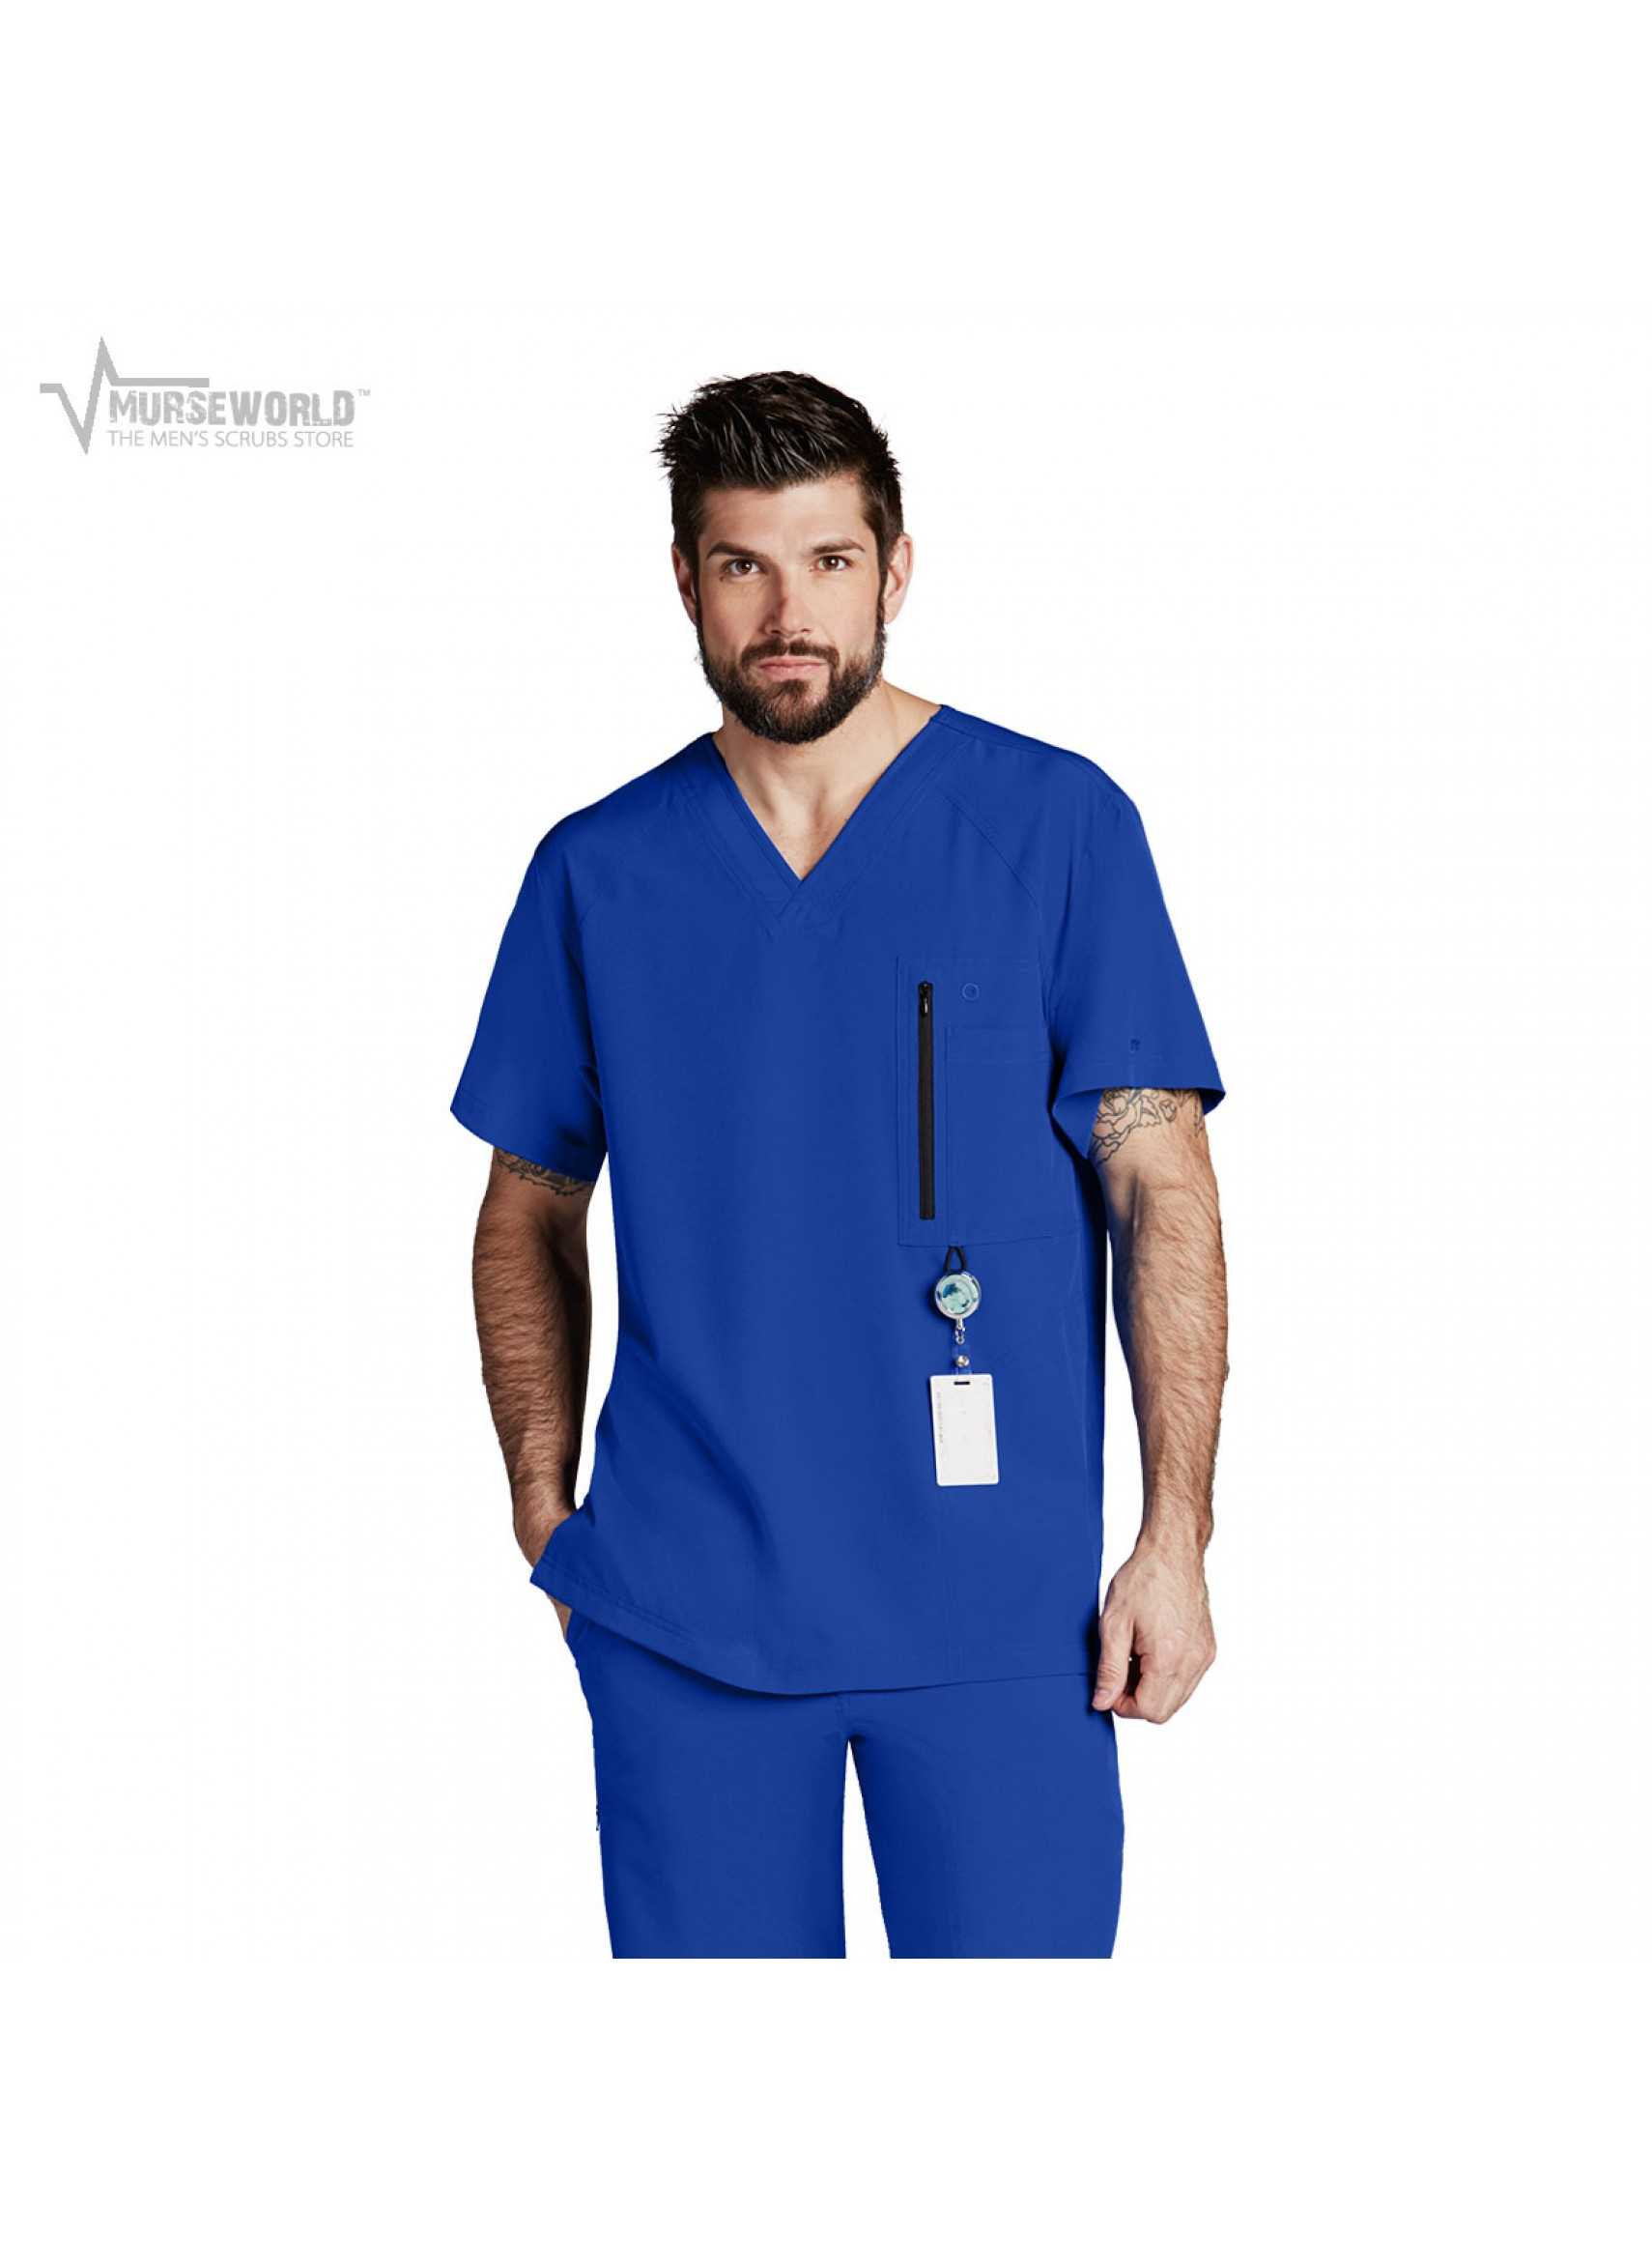 a693b2454b1 20% off all Dickies Scrubs! Use code DICKIES20 at checkout! Barco One Men's Athletic  Scrub Top ...